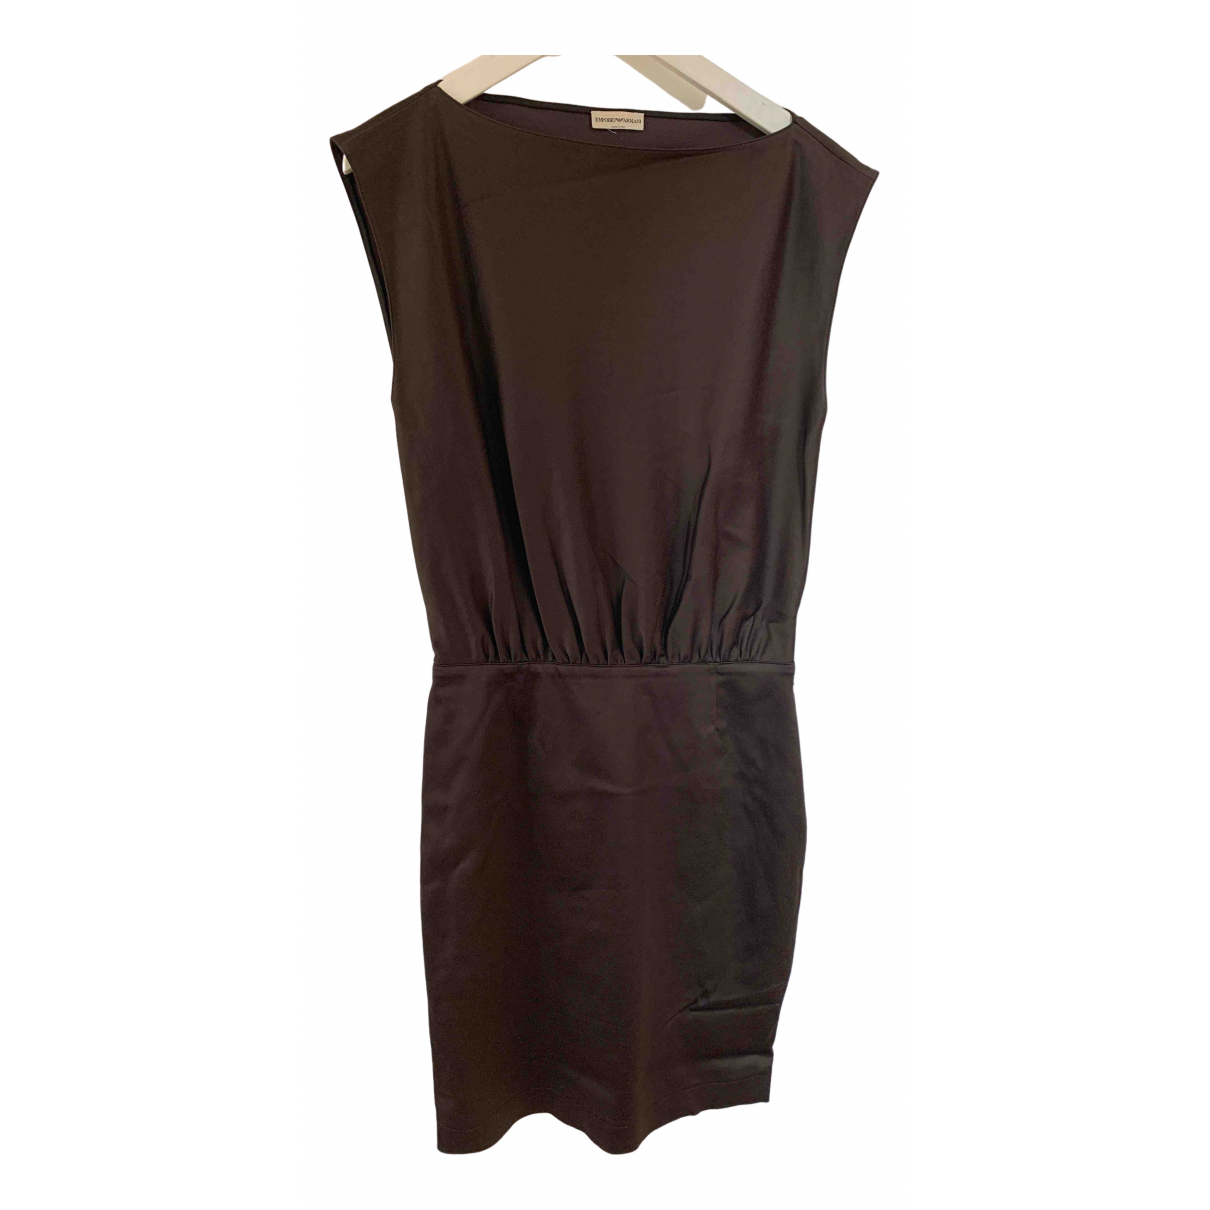 Emporio Armani \N Brown dress for Women 40 IT